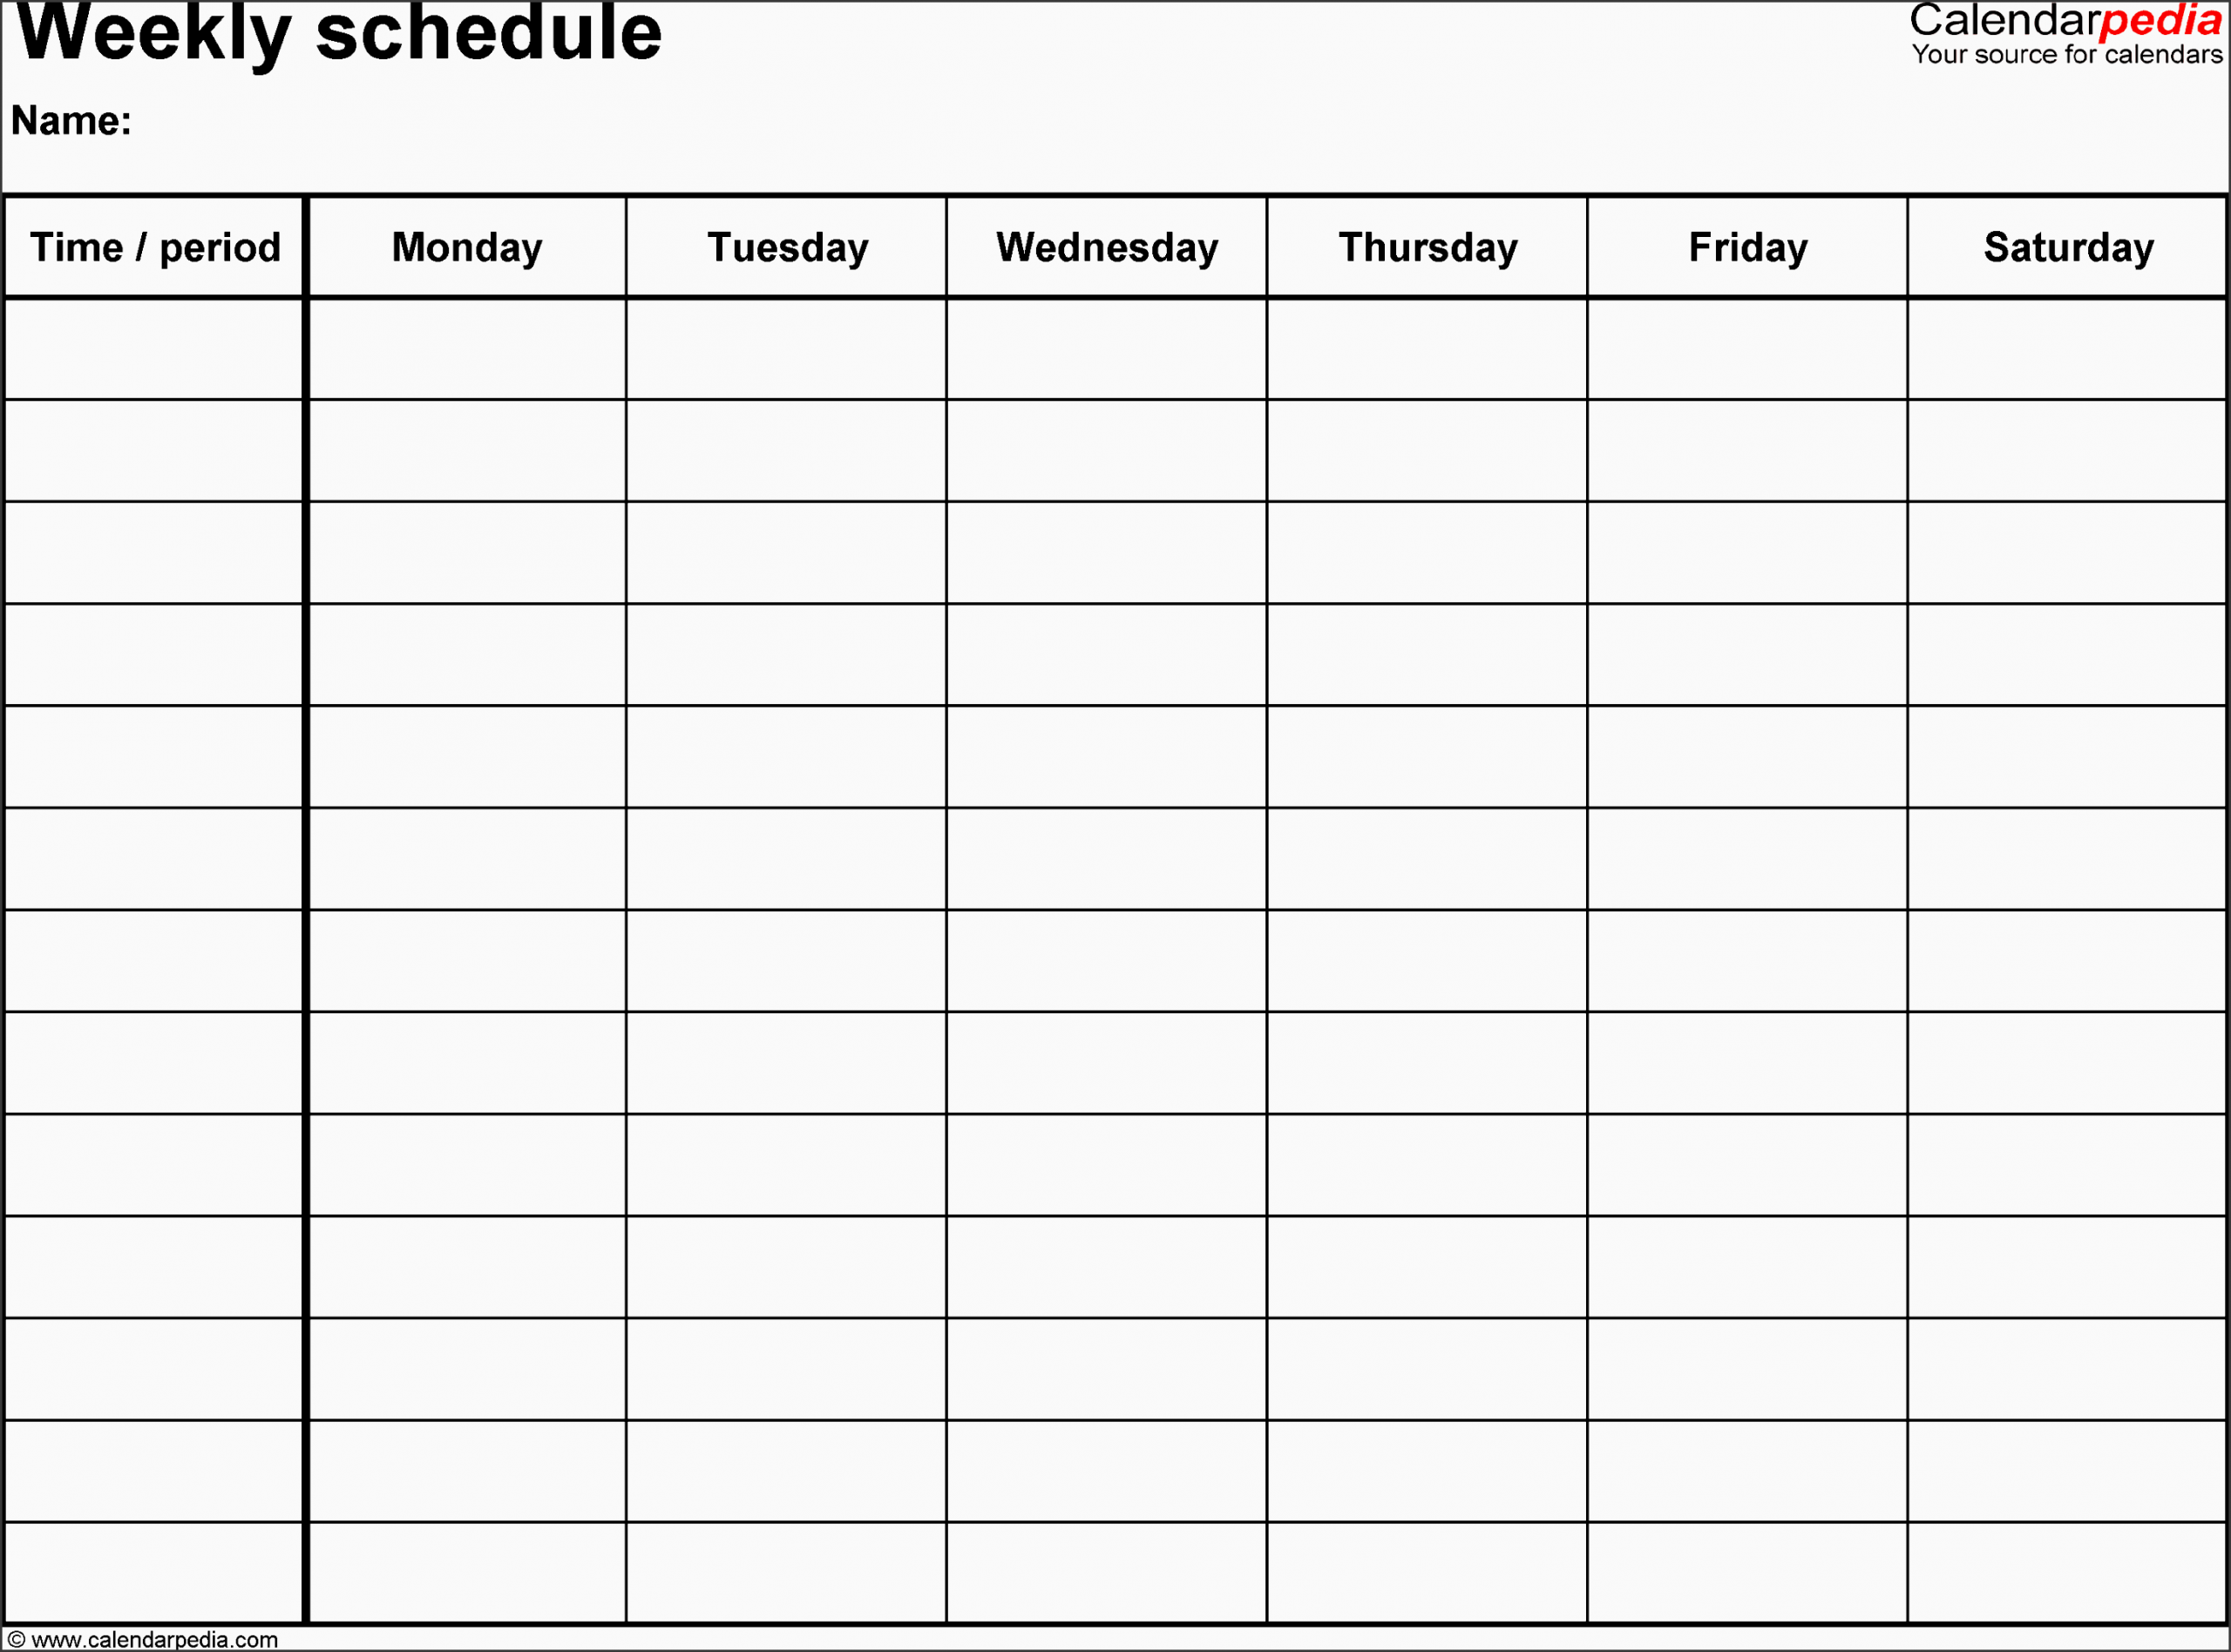 11 Employee Daily Planner Template – Sampletemplatess Monthly Planner With Time Slots